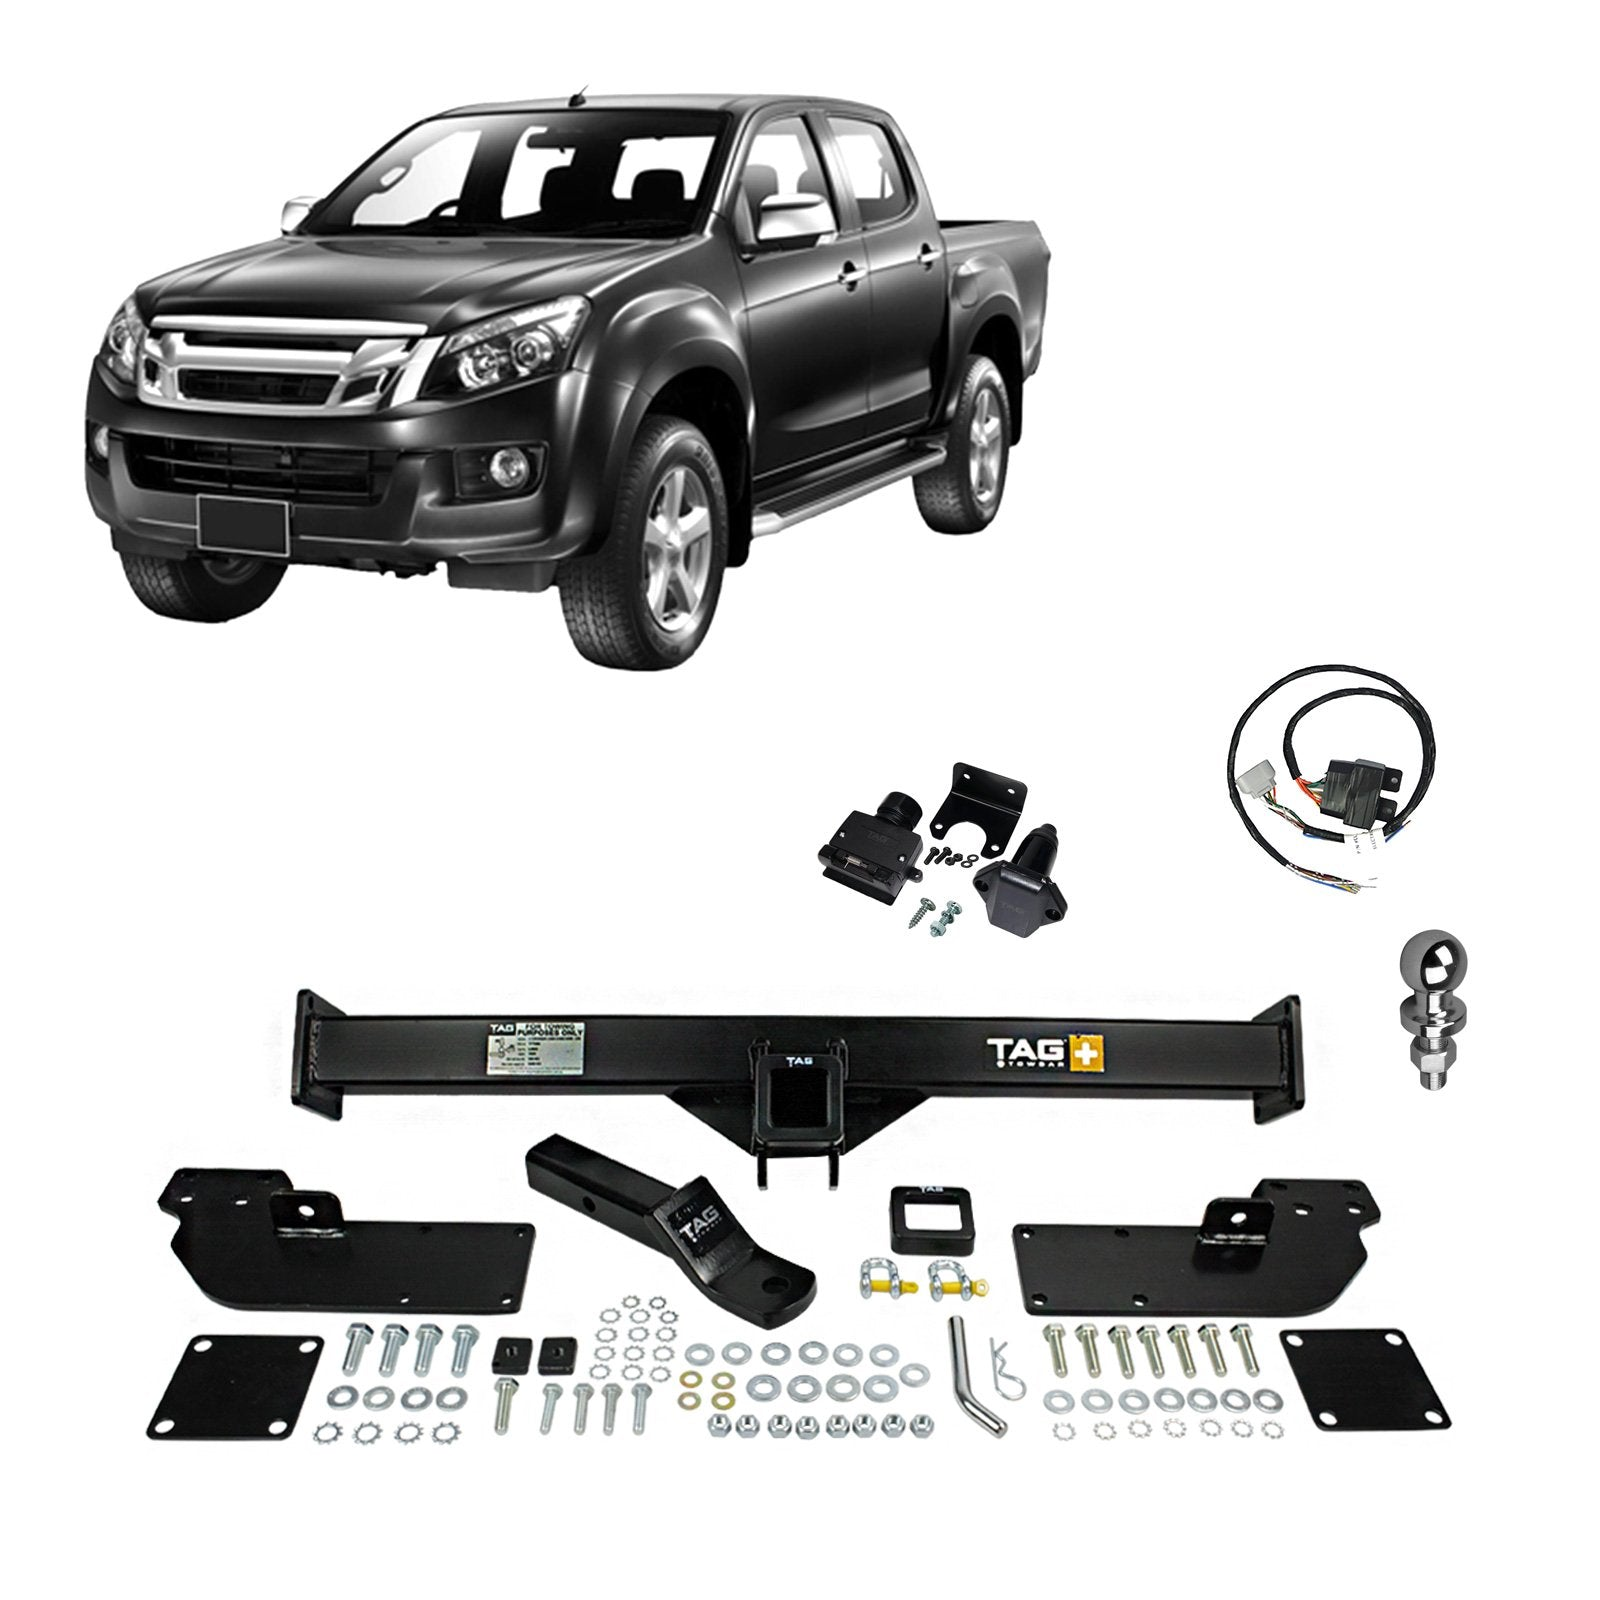 TAG Heavy Duty Towbar to suit Isuzu D-MAX (06/2012 - on) - No Wiring Harness